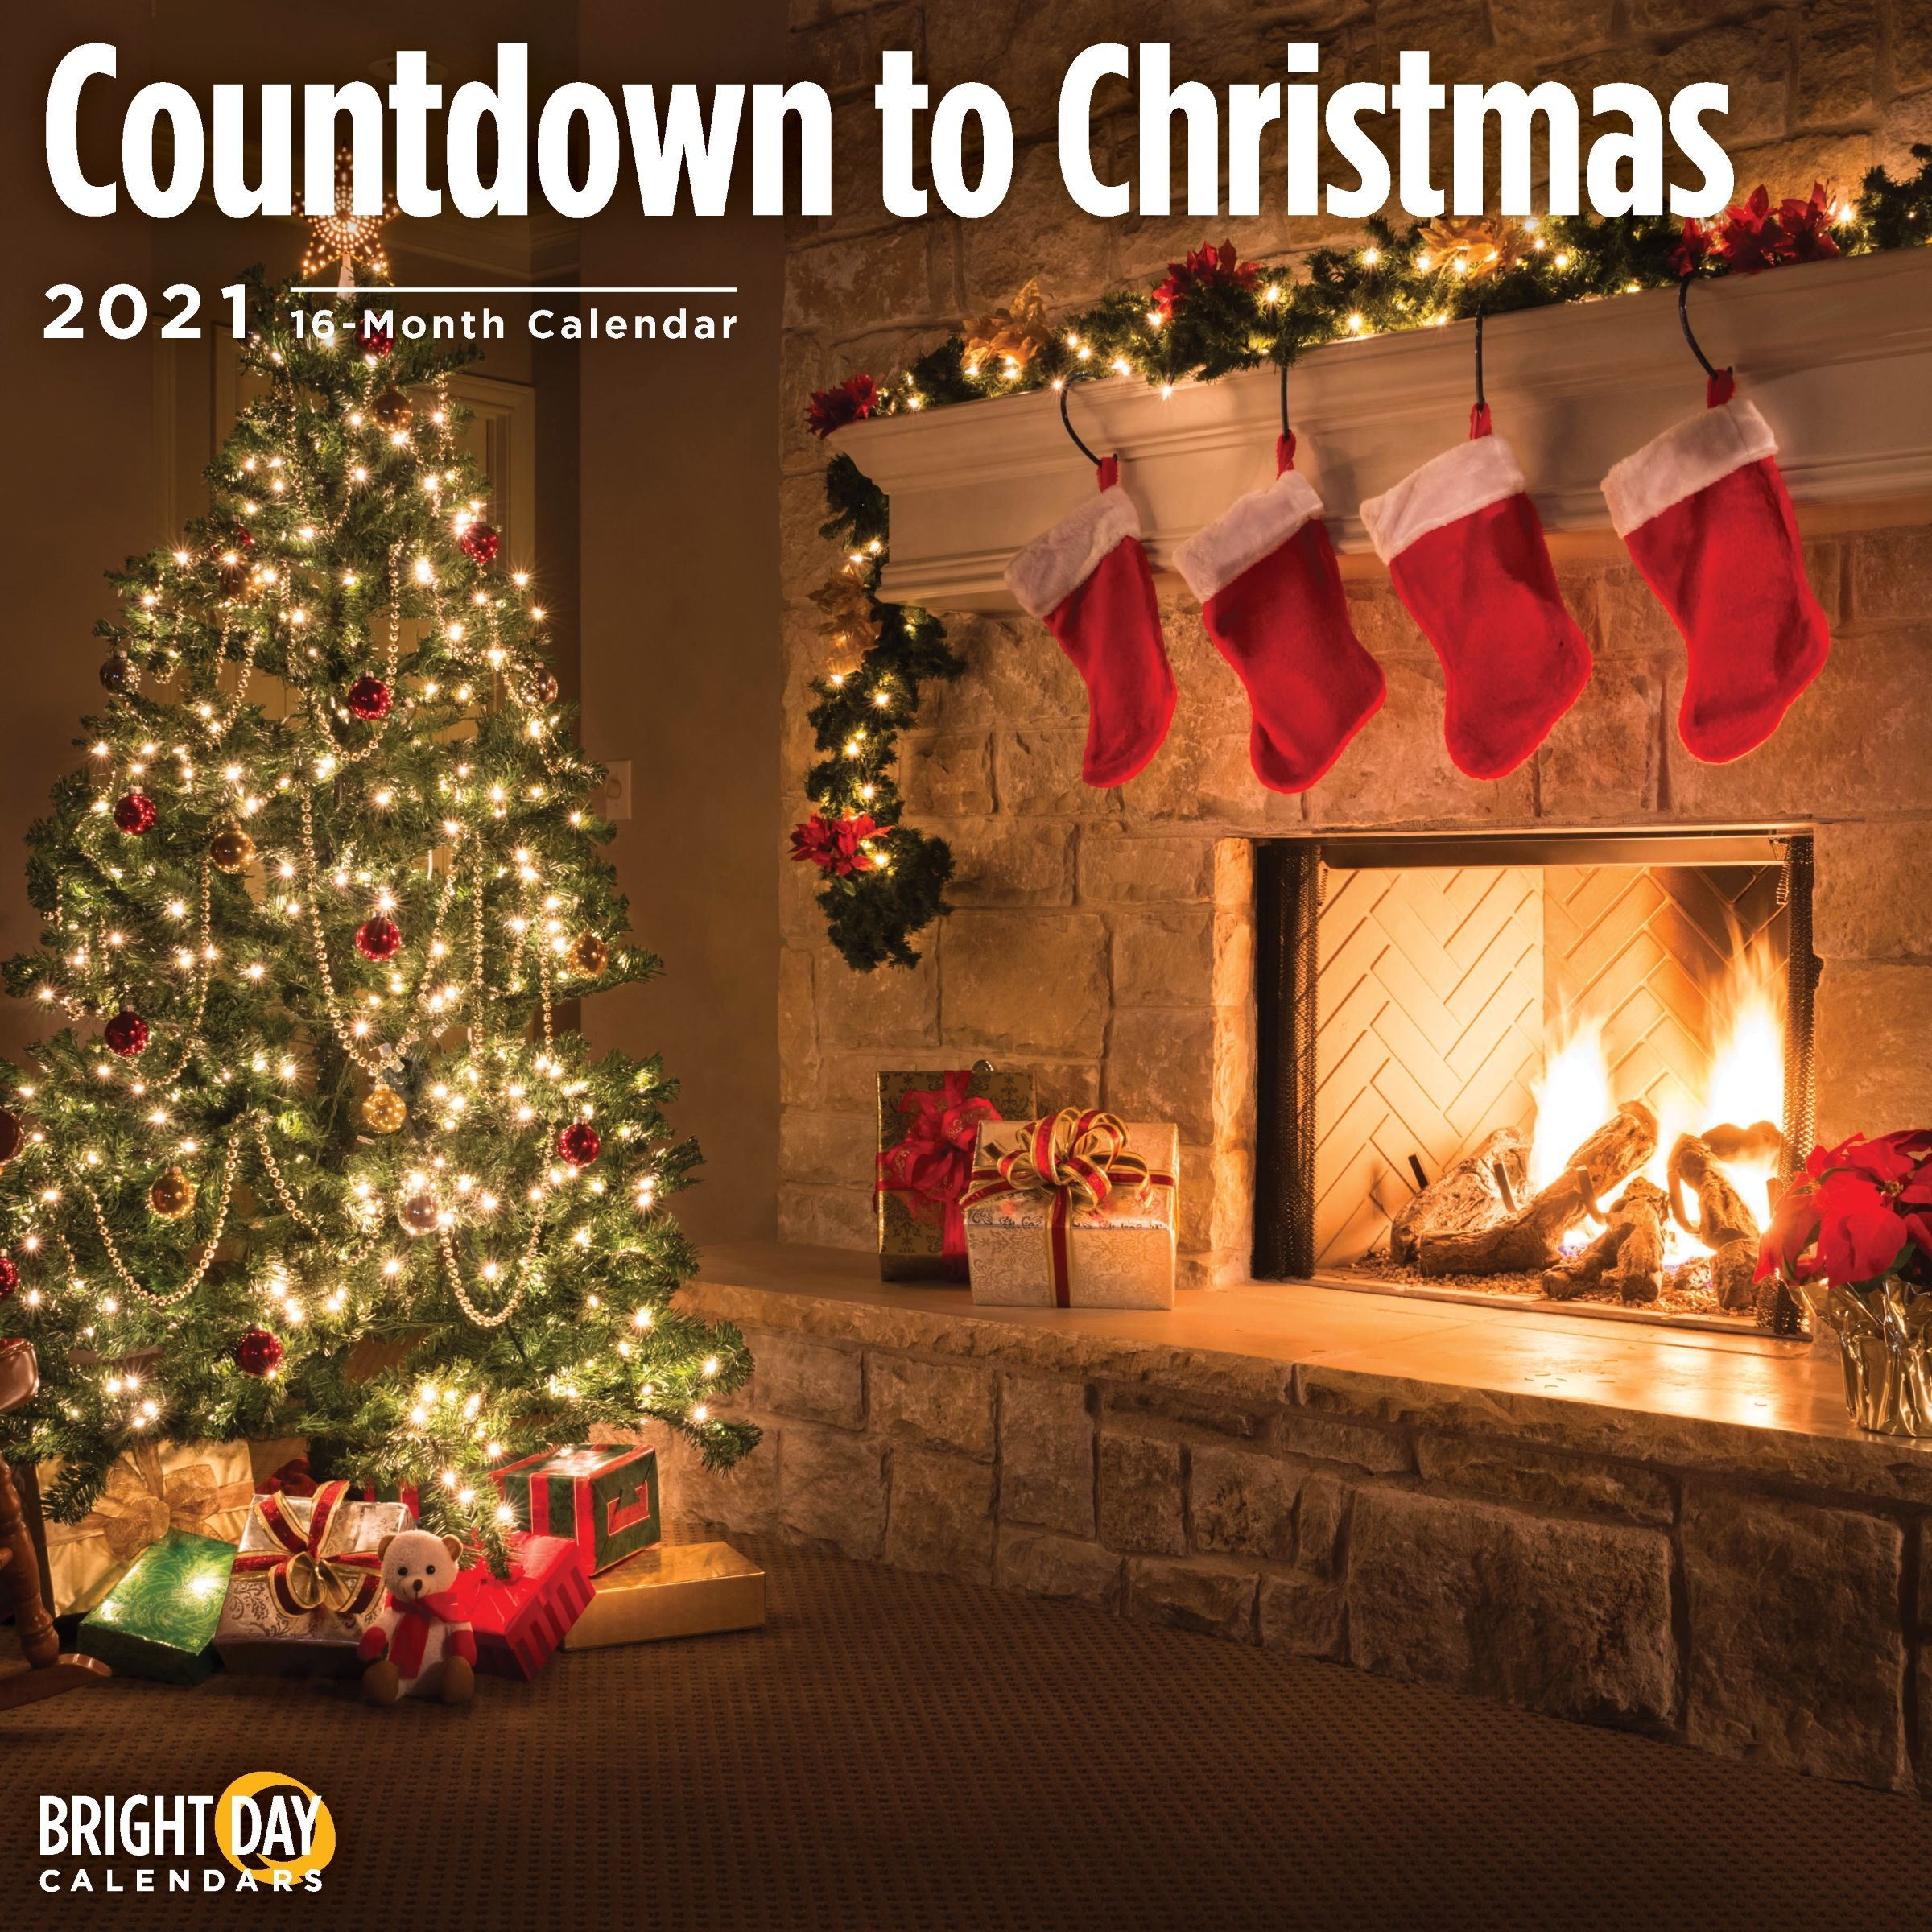 2021 Countdown To Christmas Wall Calendar - Walmart